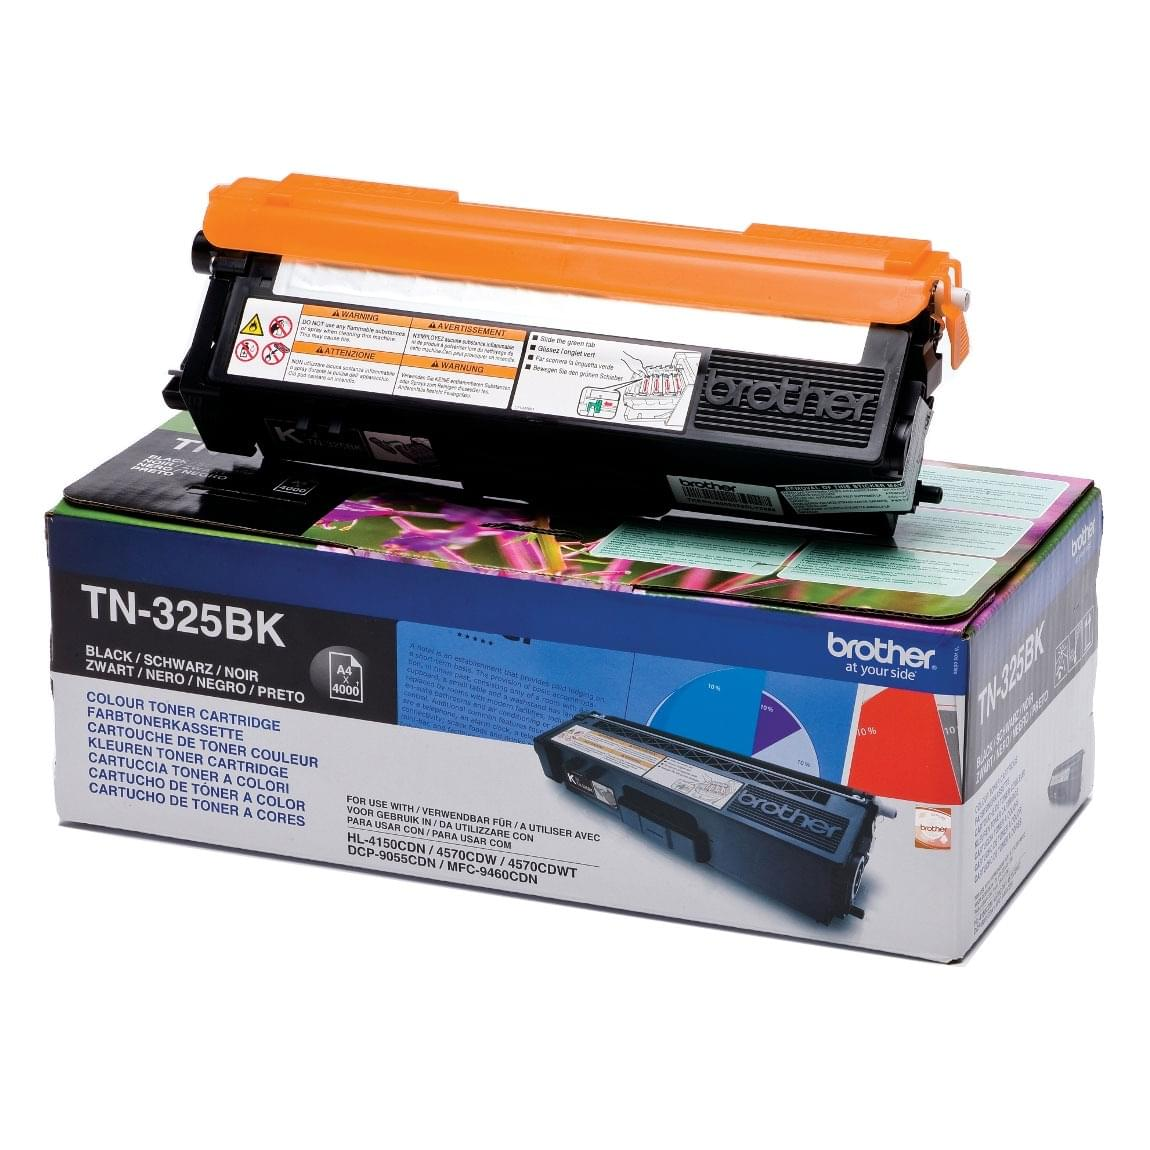 Toner TN325BK Noir 4000p pour imprimante Laser Brother - 0